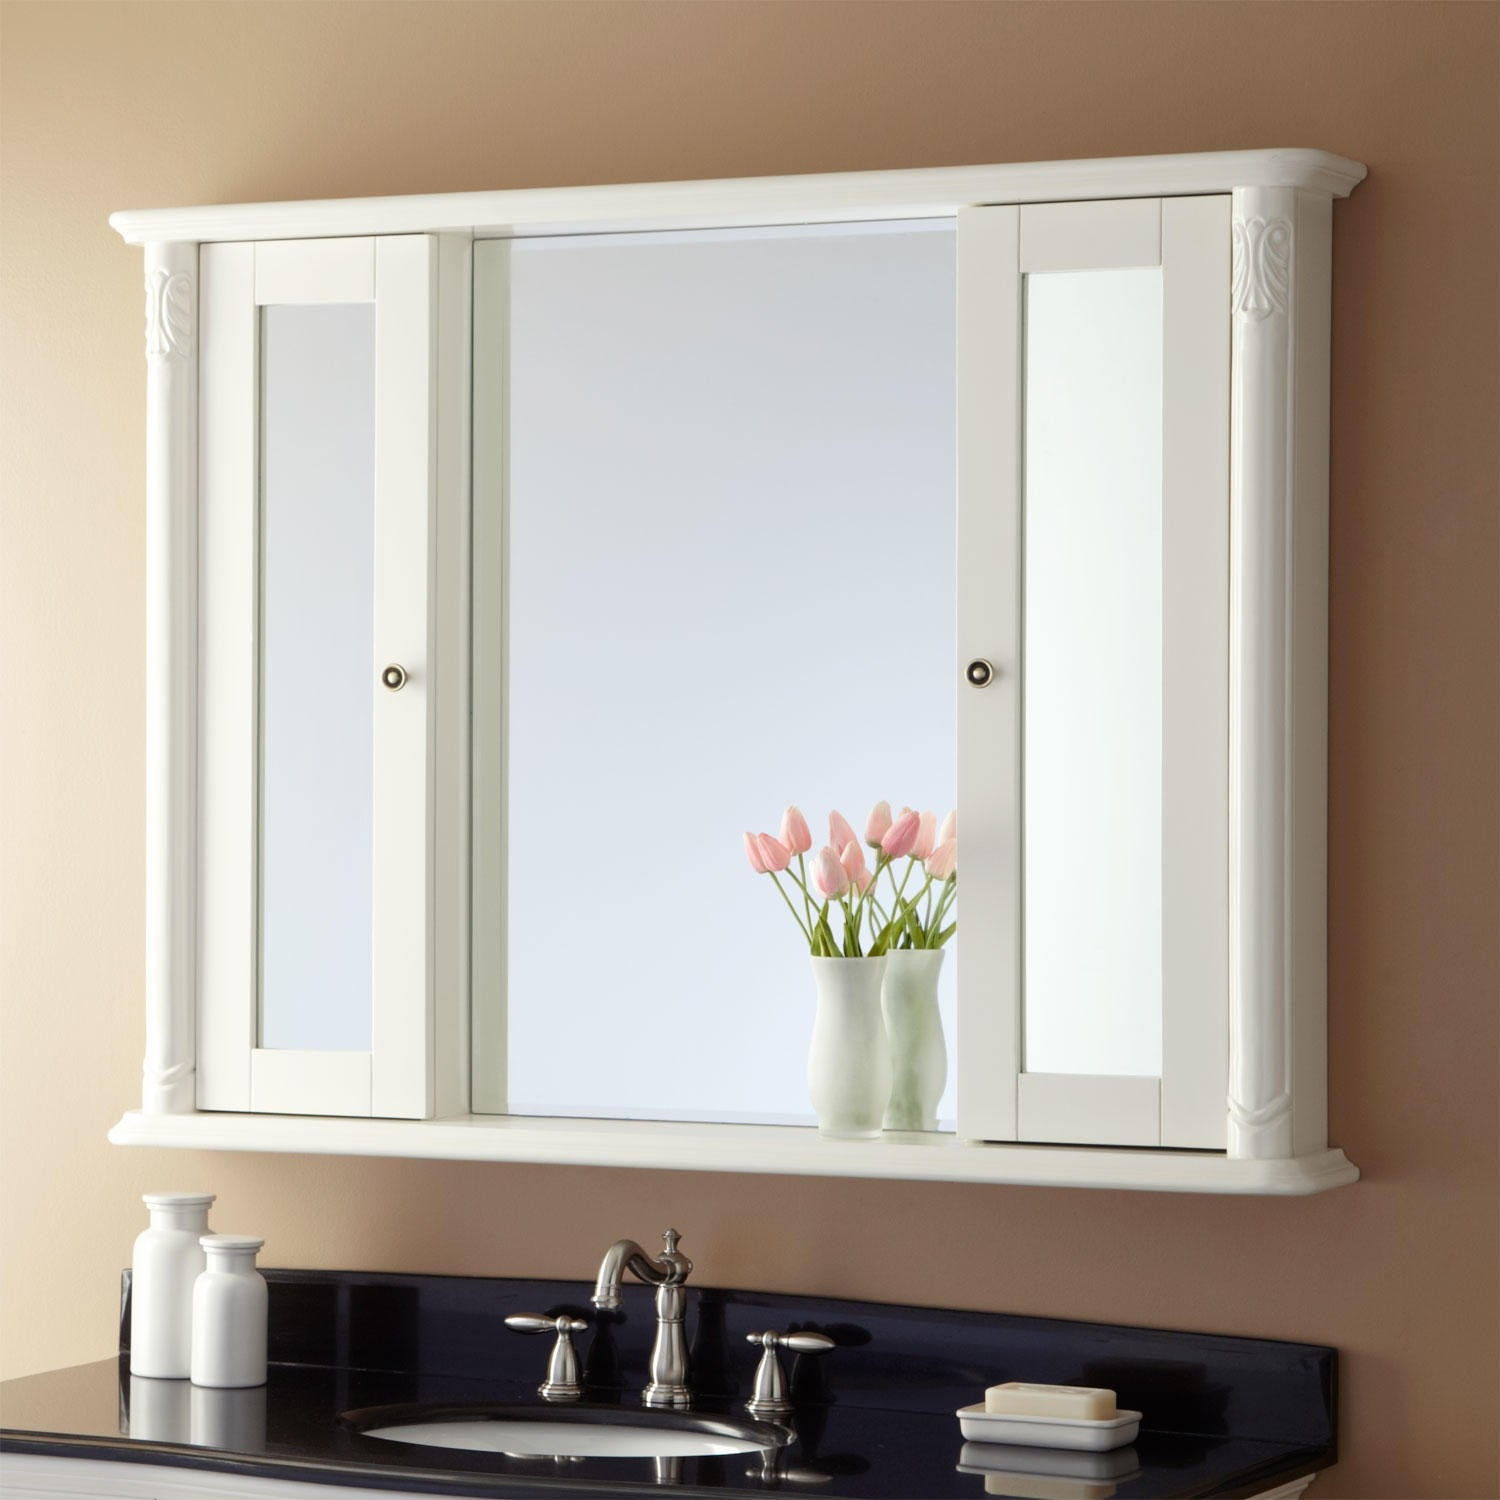 Permalink to Bathroom Medicine Cabinets With Mirrors 48